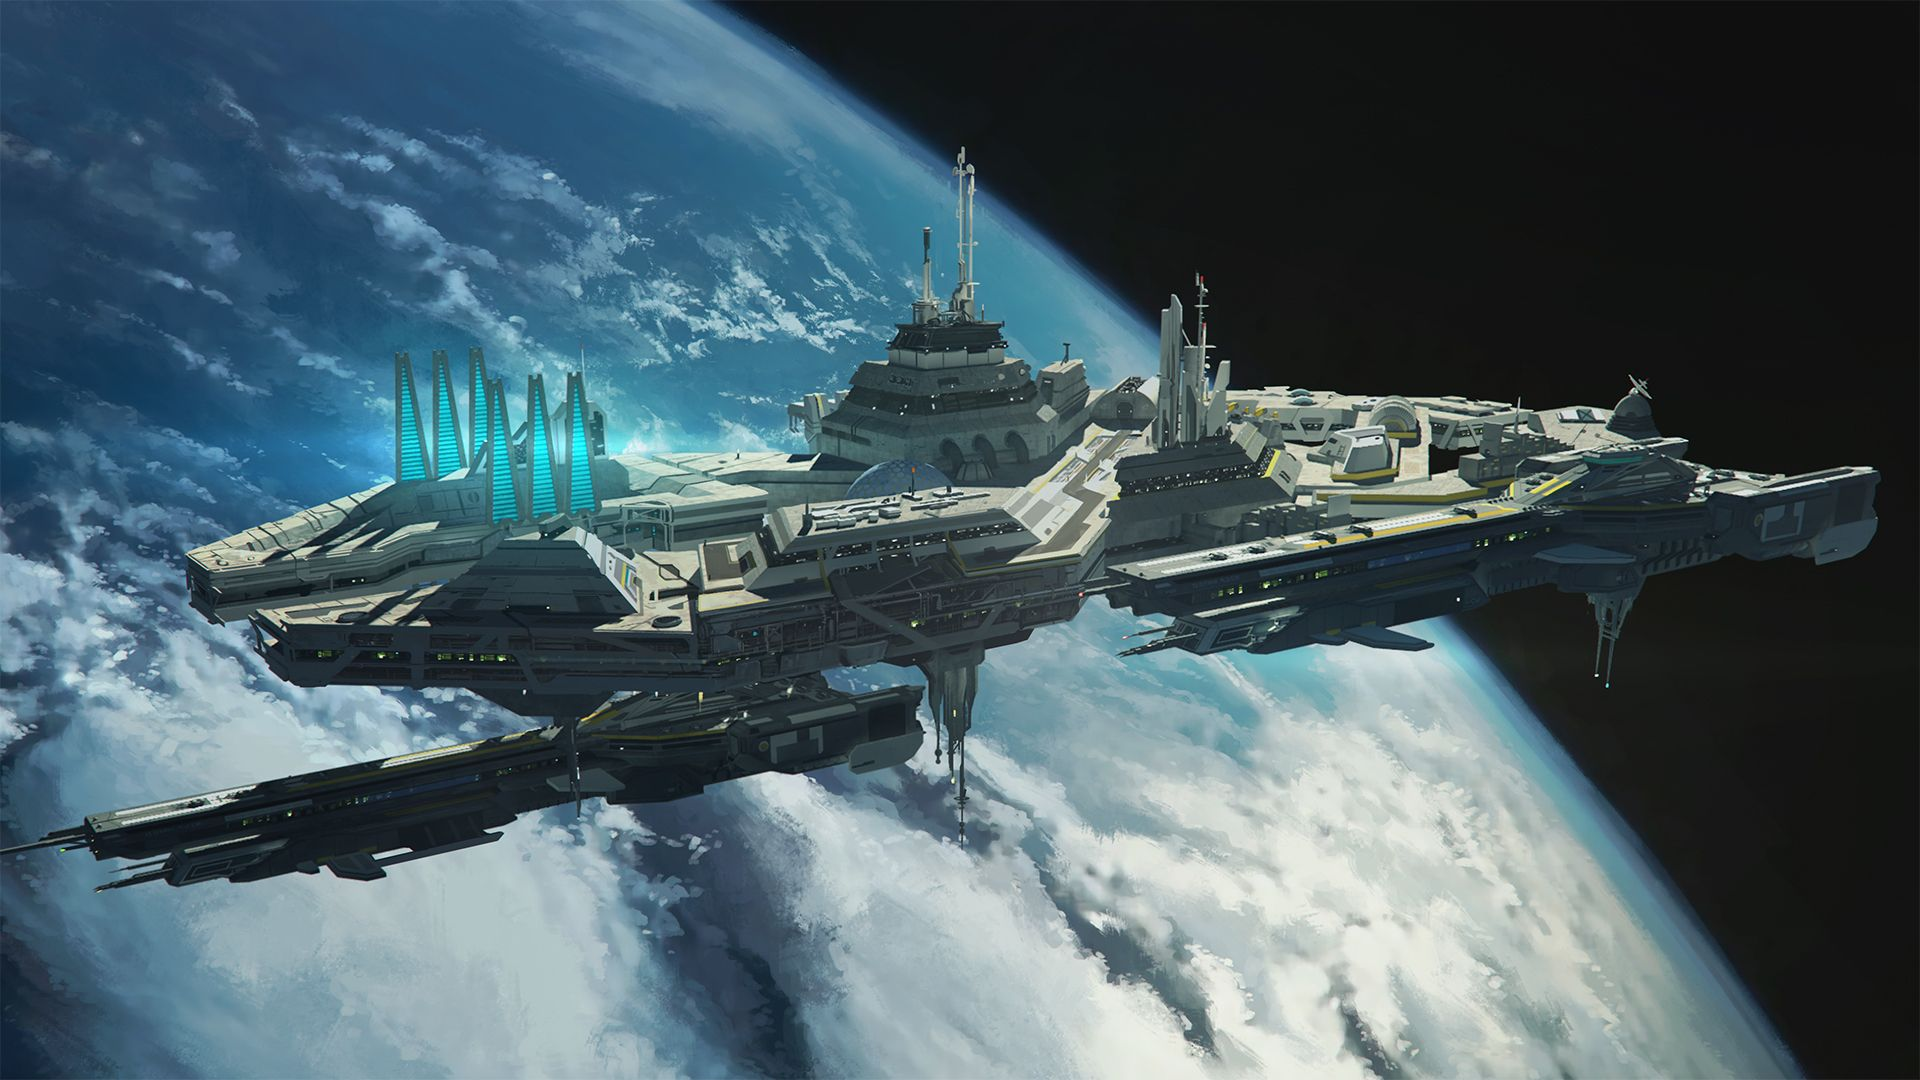 prison sci fi space station - photo #17